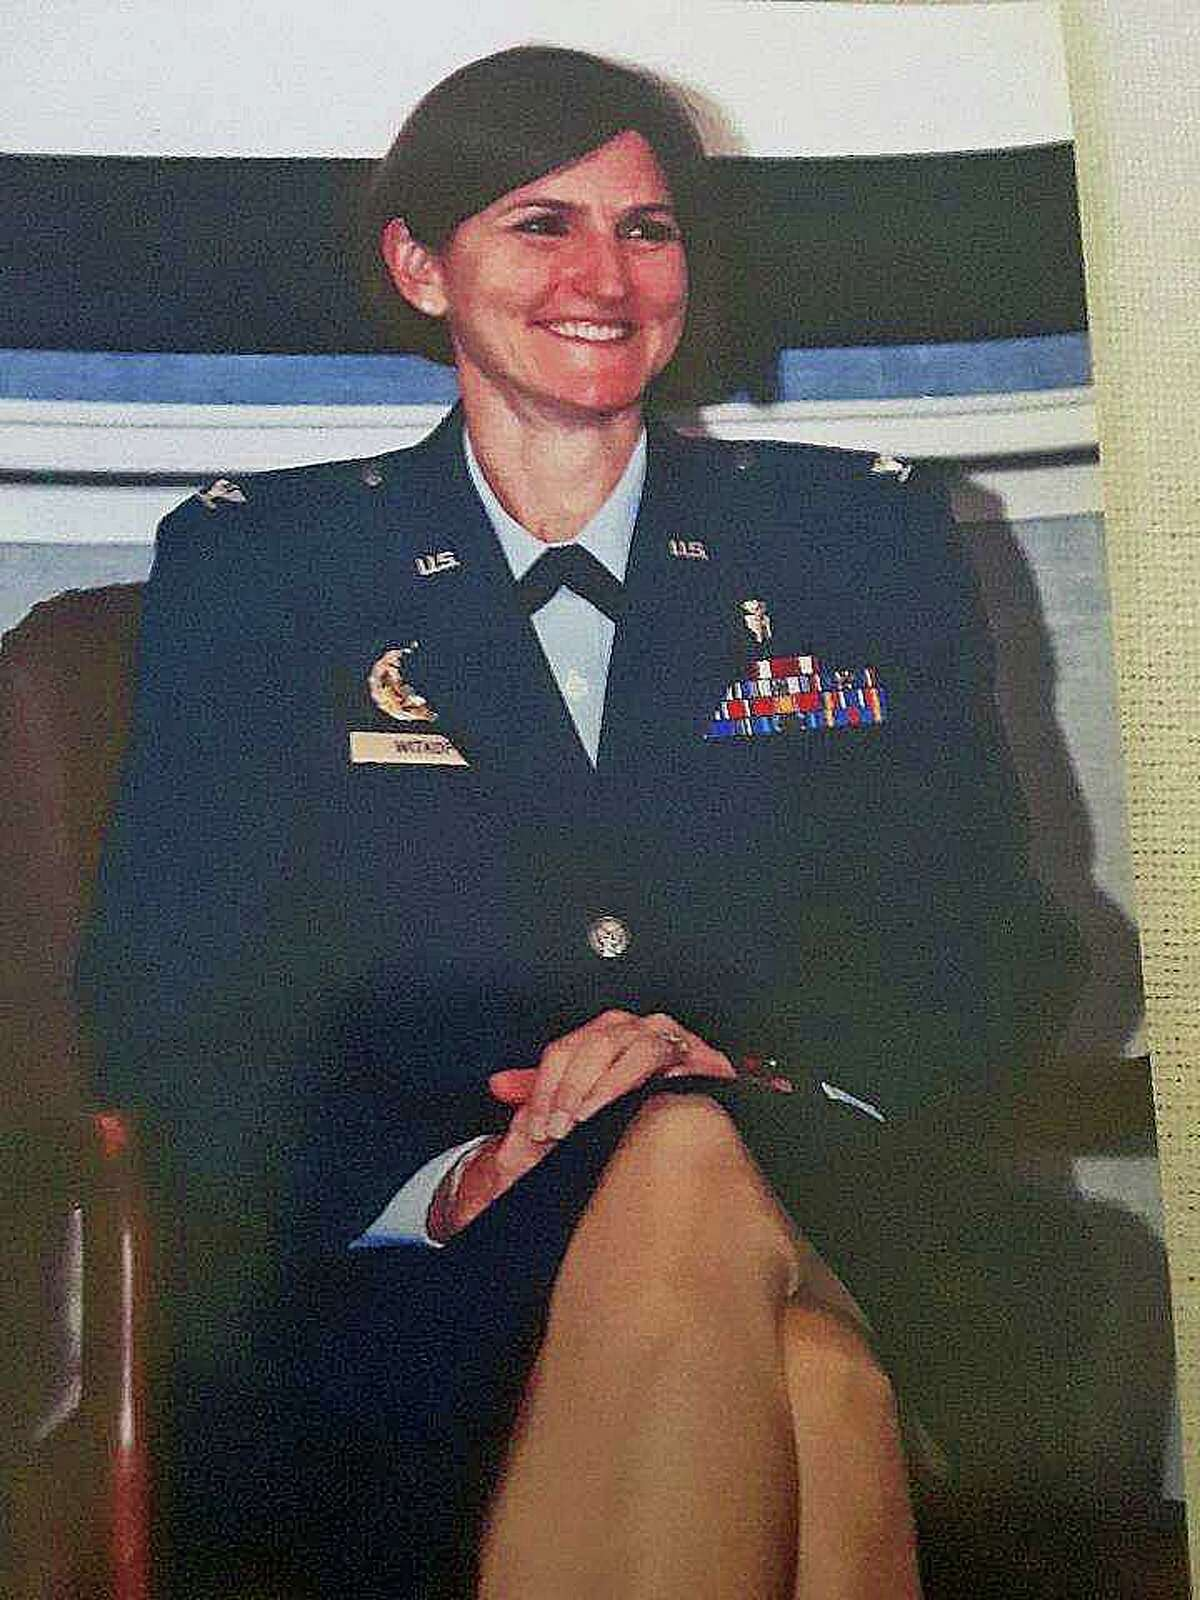 Col. (ret) Dr. Catherine Takacs Witkop recently retired after a long career with the U.S. Air Force Medical Corps. Witkop is a Torrington native whose parents still live in the city.